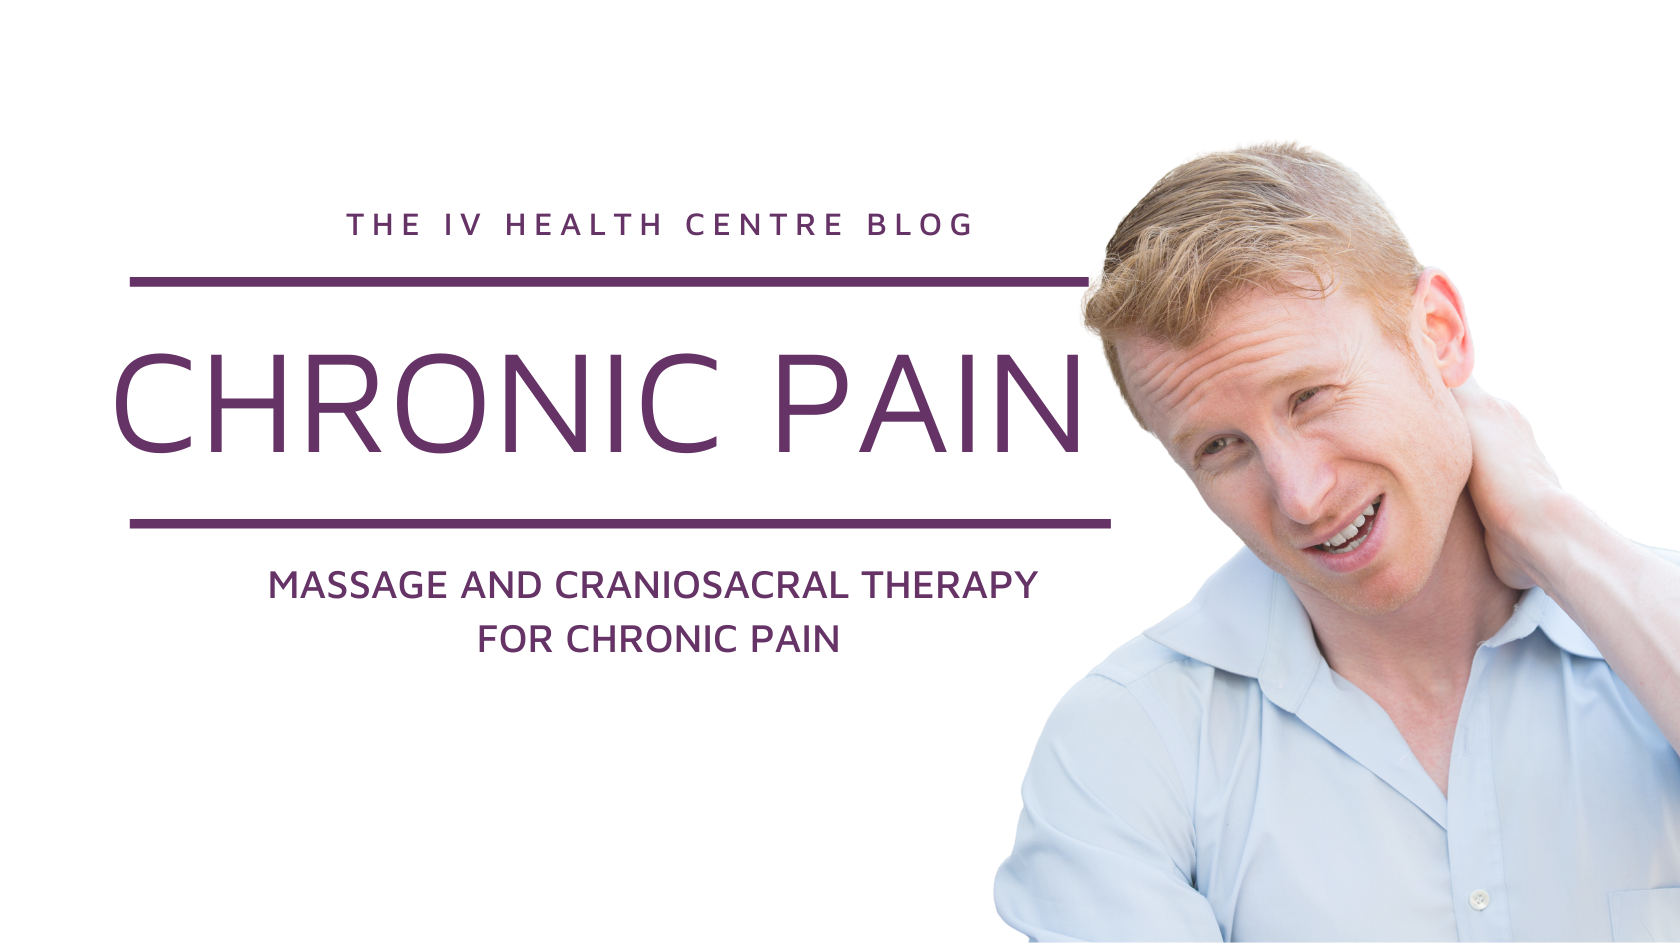 Massage and Craniosacral Therapy for Chronic Pain